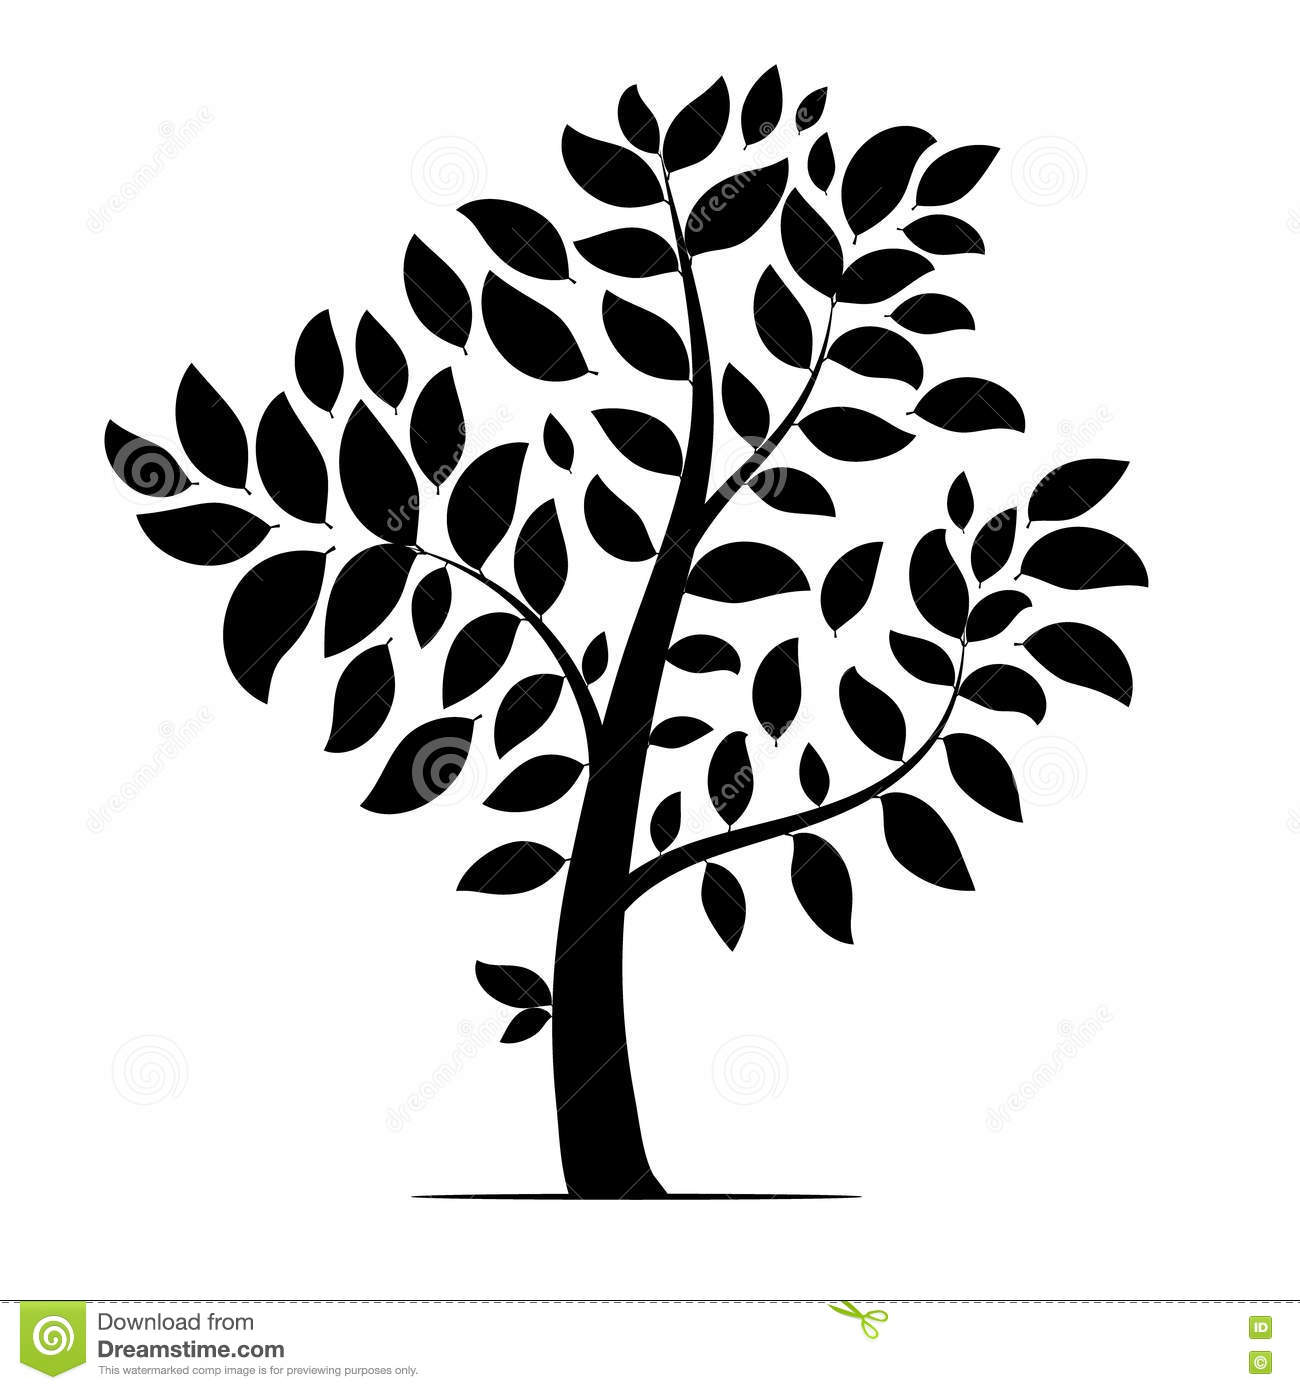 tree with leaves silhouette stock vector illustration of